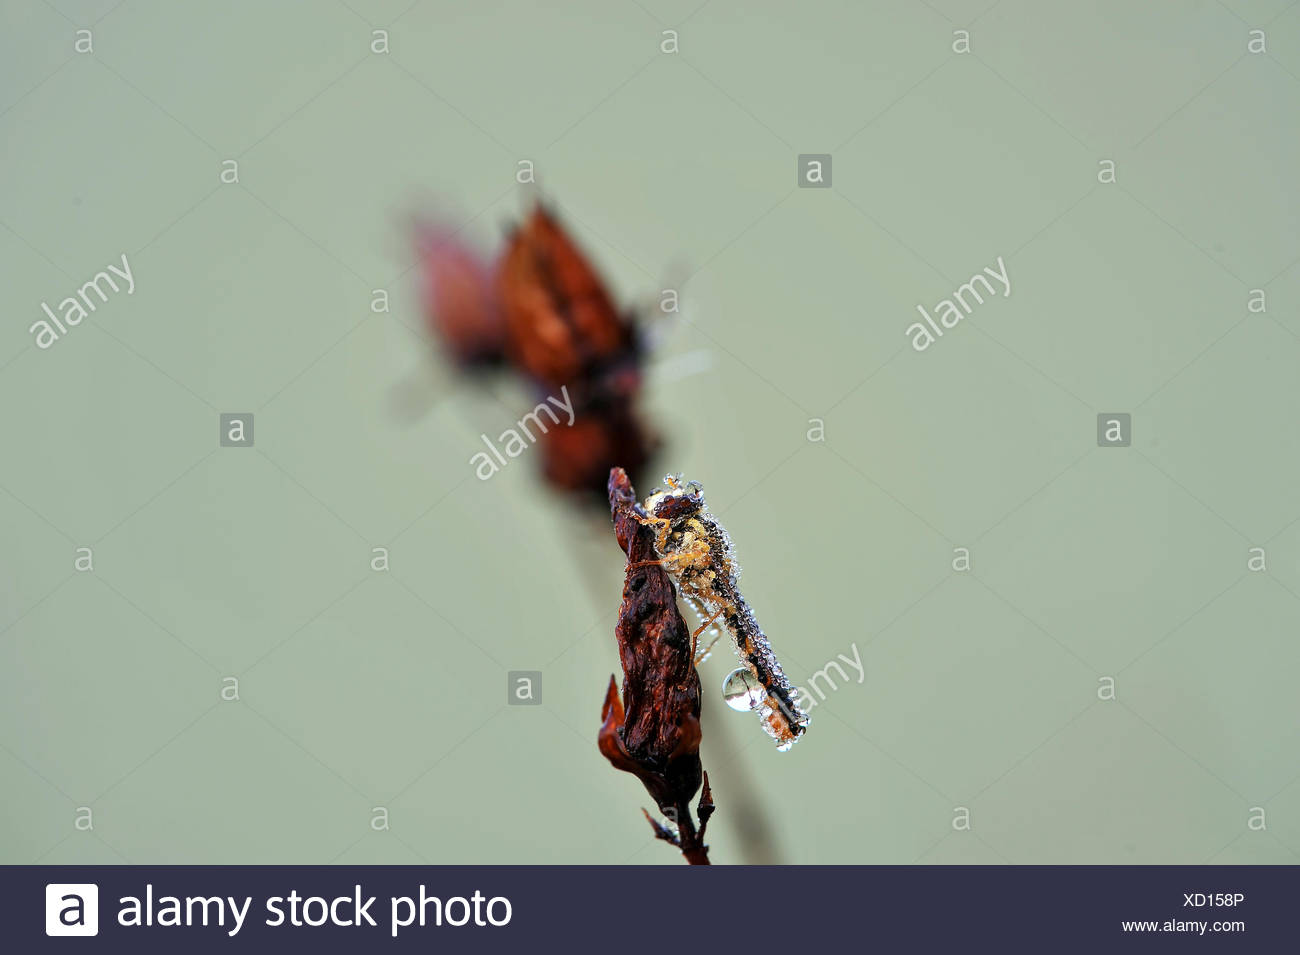 marmalade fly with watertrops - Stock Image